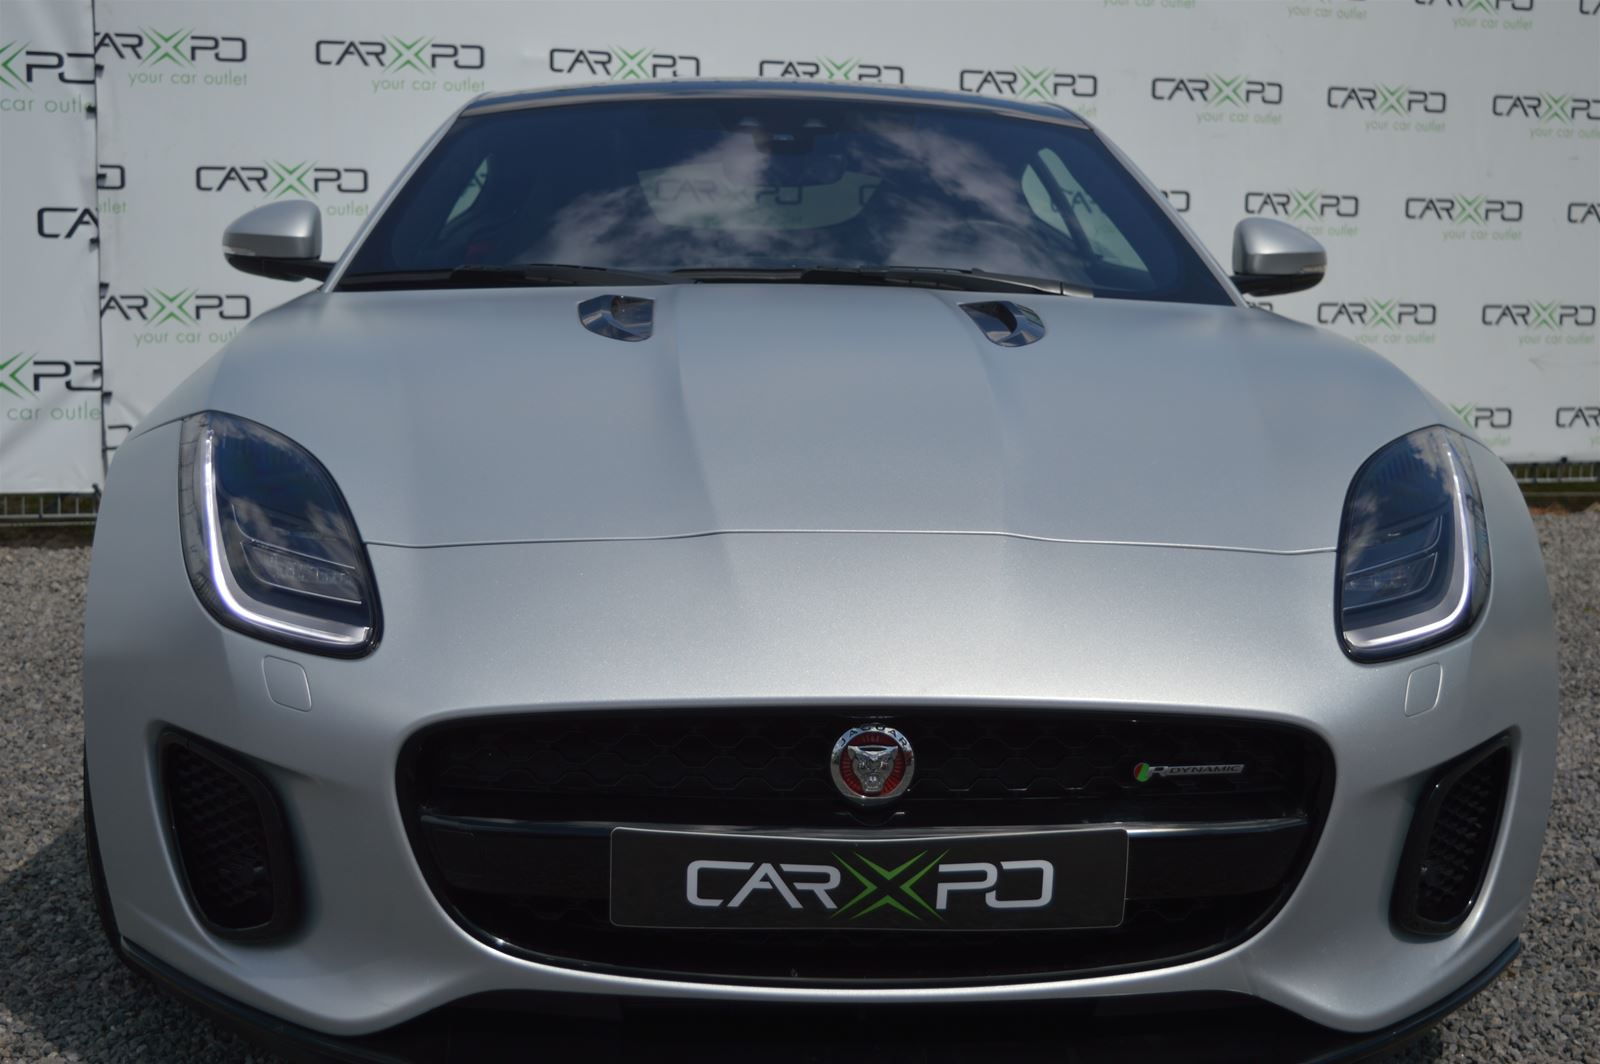 JAGUAR F-TYPE 2.0 i4 R-DYNAMIC SPECIAL PAINT SILVER SATIN